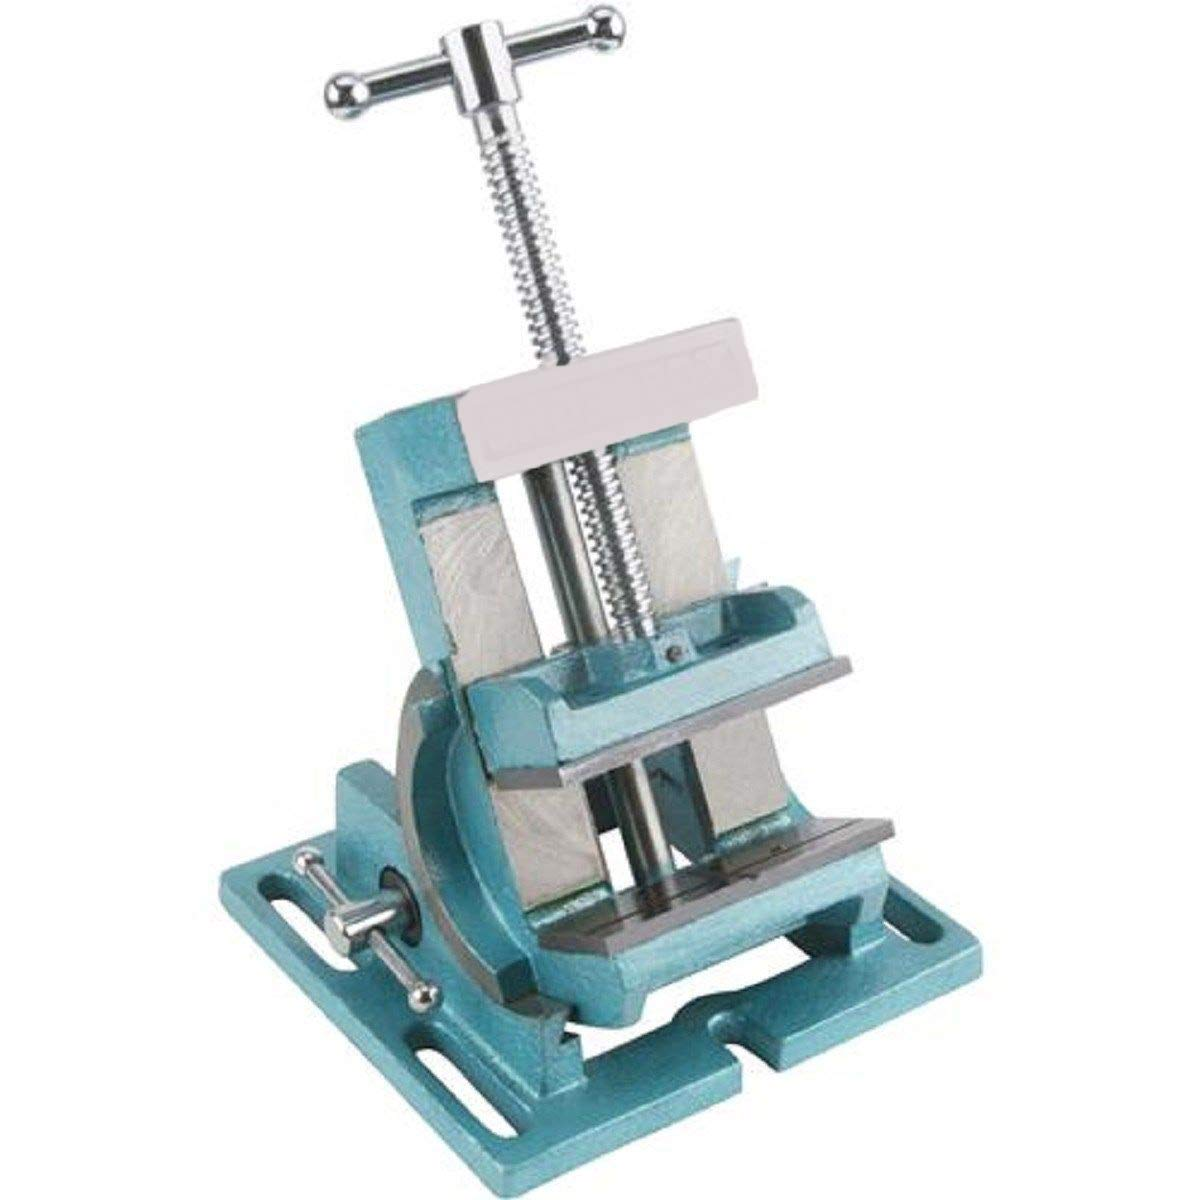 COLIBROX>4 INCH SMALL ANGLE TILT TILTING VISE FOR DRILL PRESS>This Angle Vise offers a full 90° adjustment from horizontal to vertical with easy-to-read scale and indexing pin set for every 15°. by COLIBROX